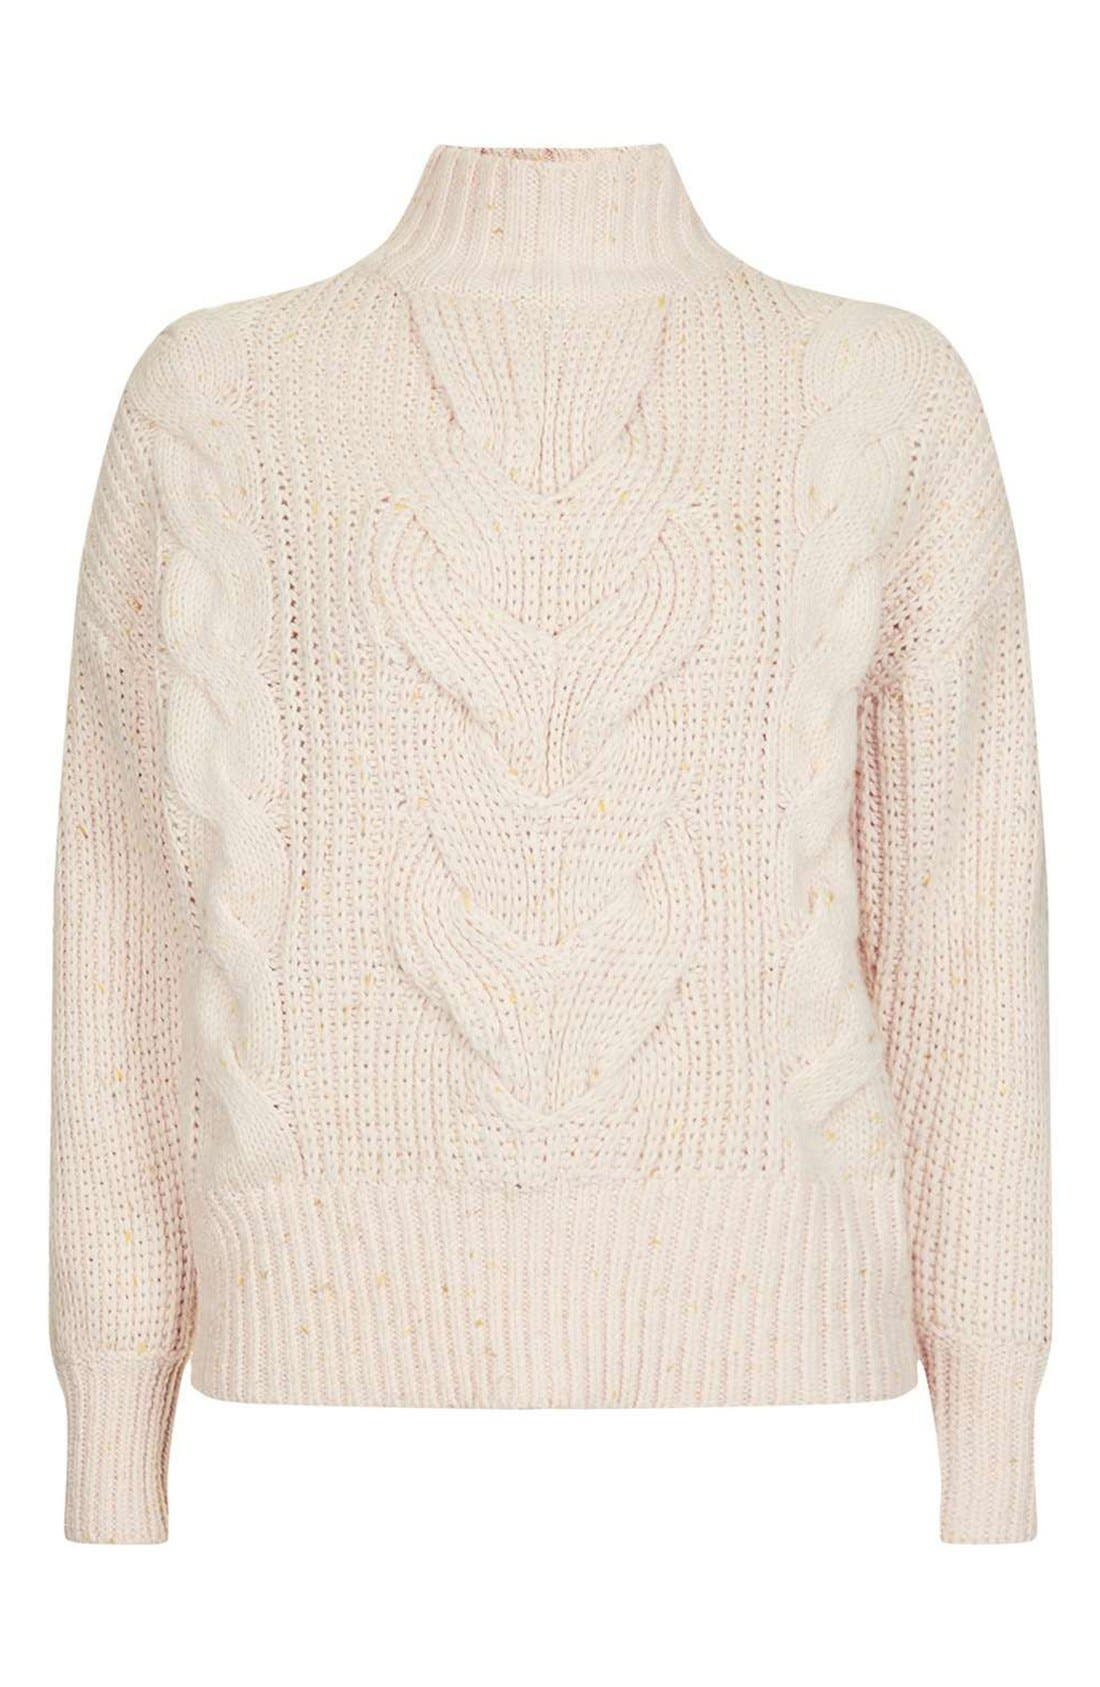 Cable Knit Sweater,                             Alternate thumbnail 3, color,                             250